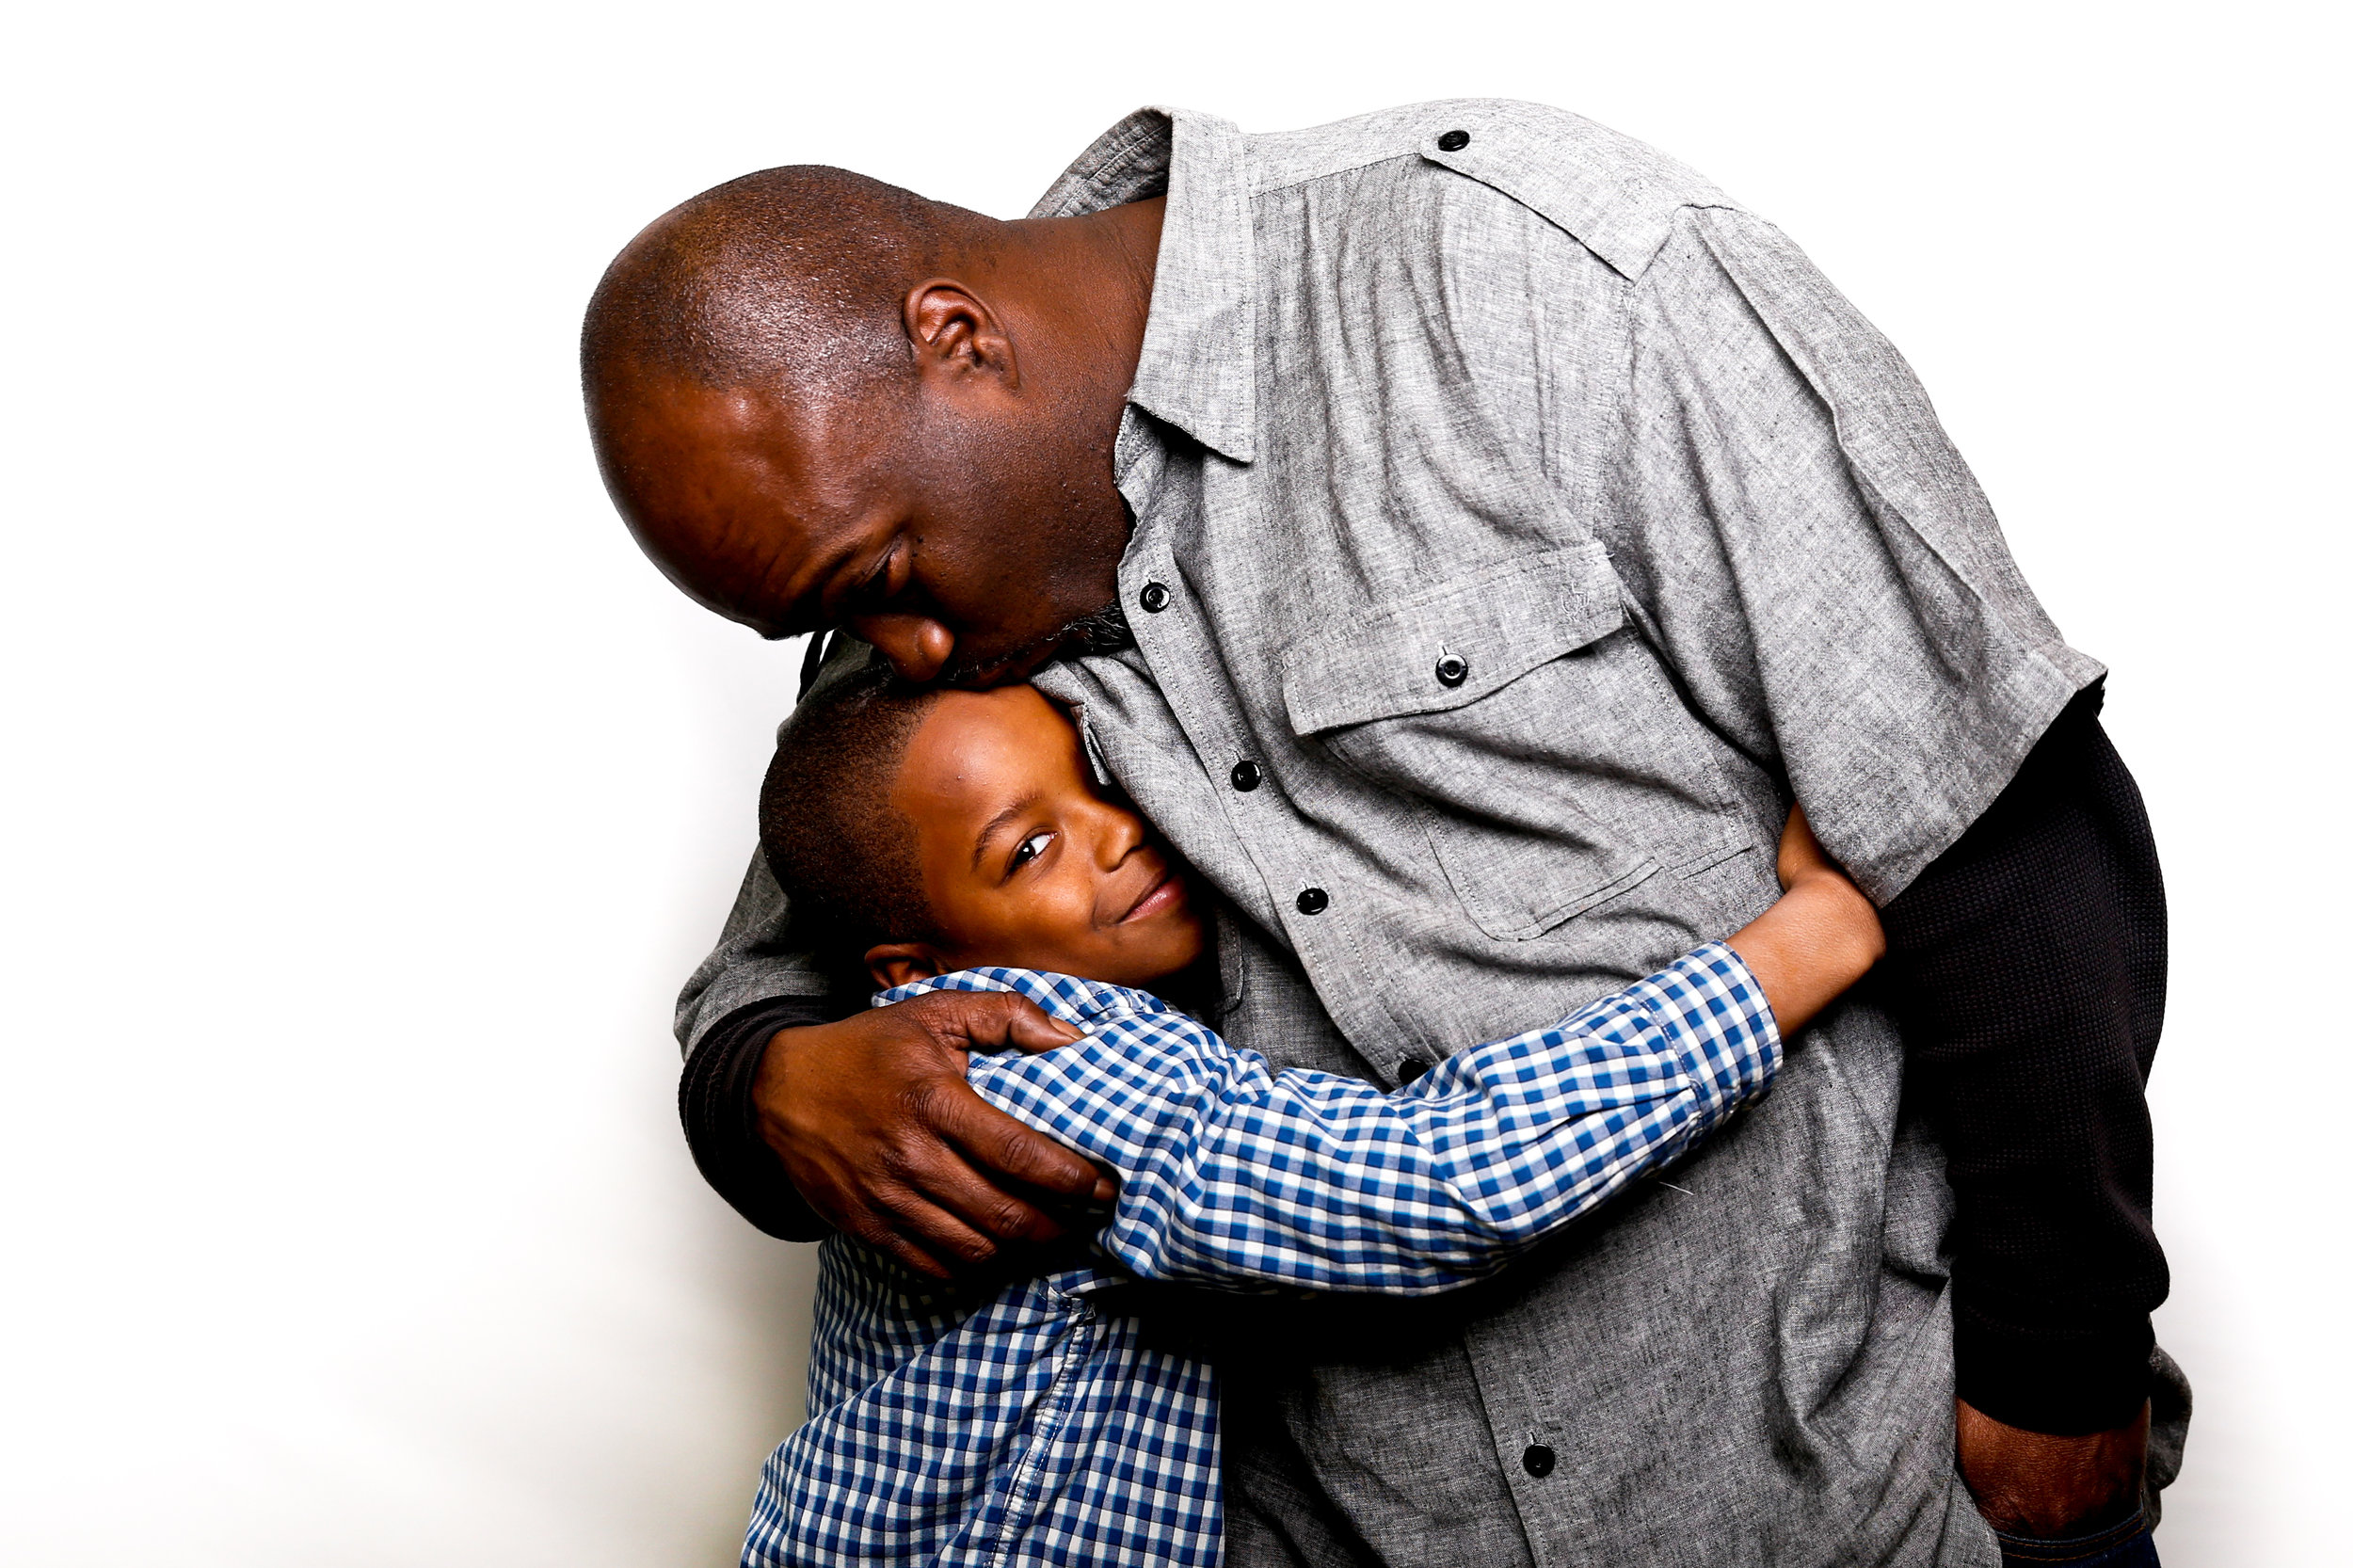 Dei'on Wright, of Flint, hugs his father Moe during a free holiday portrait on Wednesday, Dec. 14, 2016 at The Flint Journal in downtown Flint. To them, the holiday season means family and sharing.